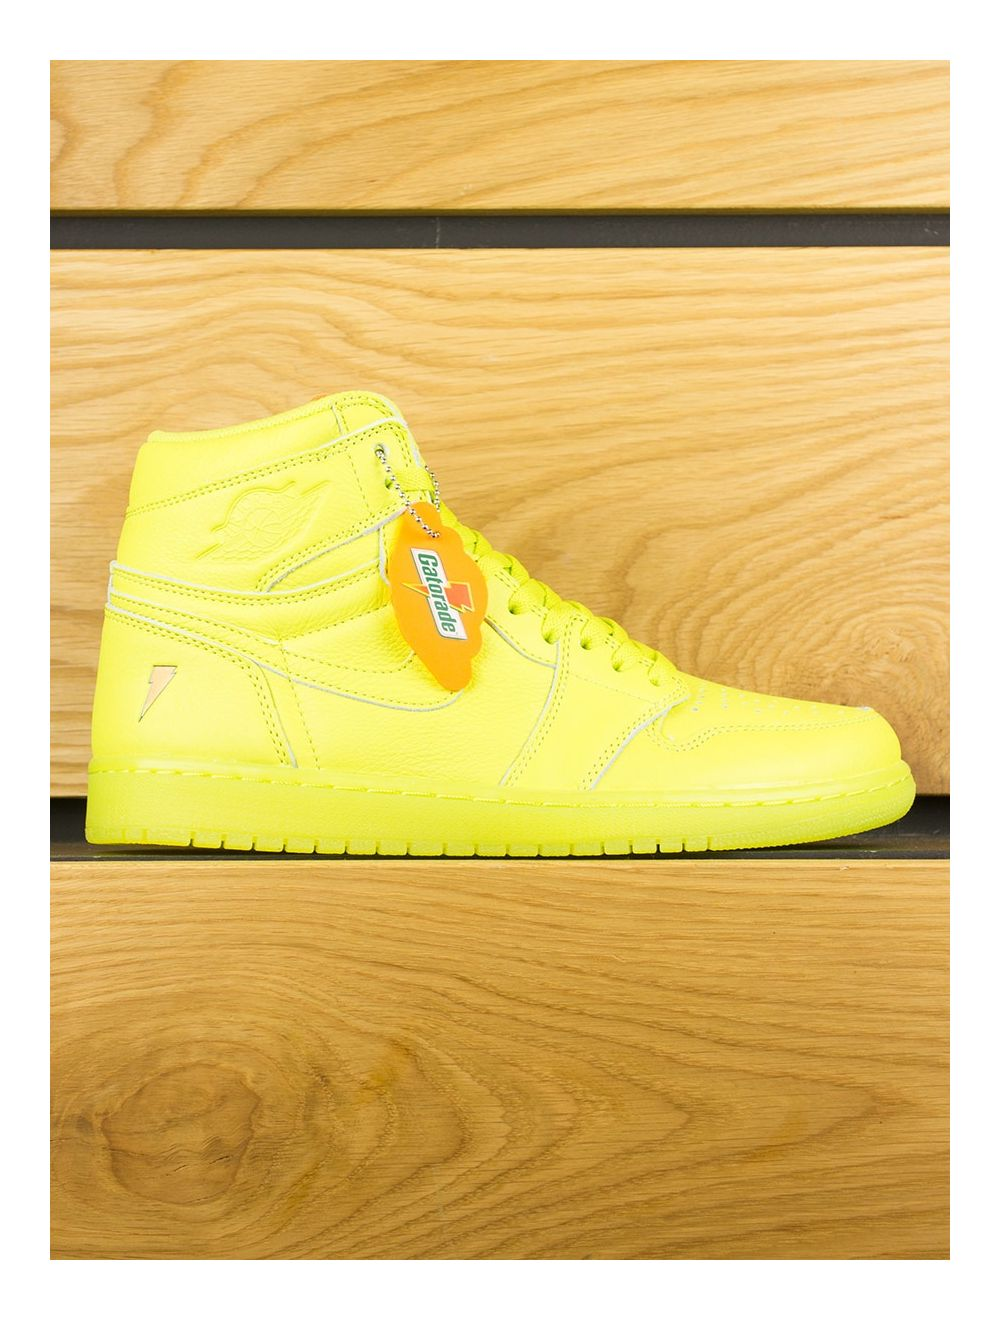 premium selection 356a0 021b8 Nike Air Jordan 1 Retro High OG x Gatorade